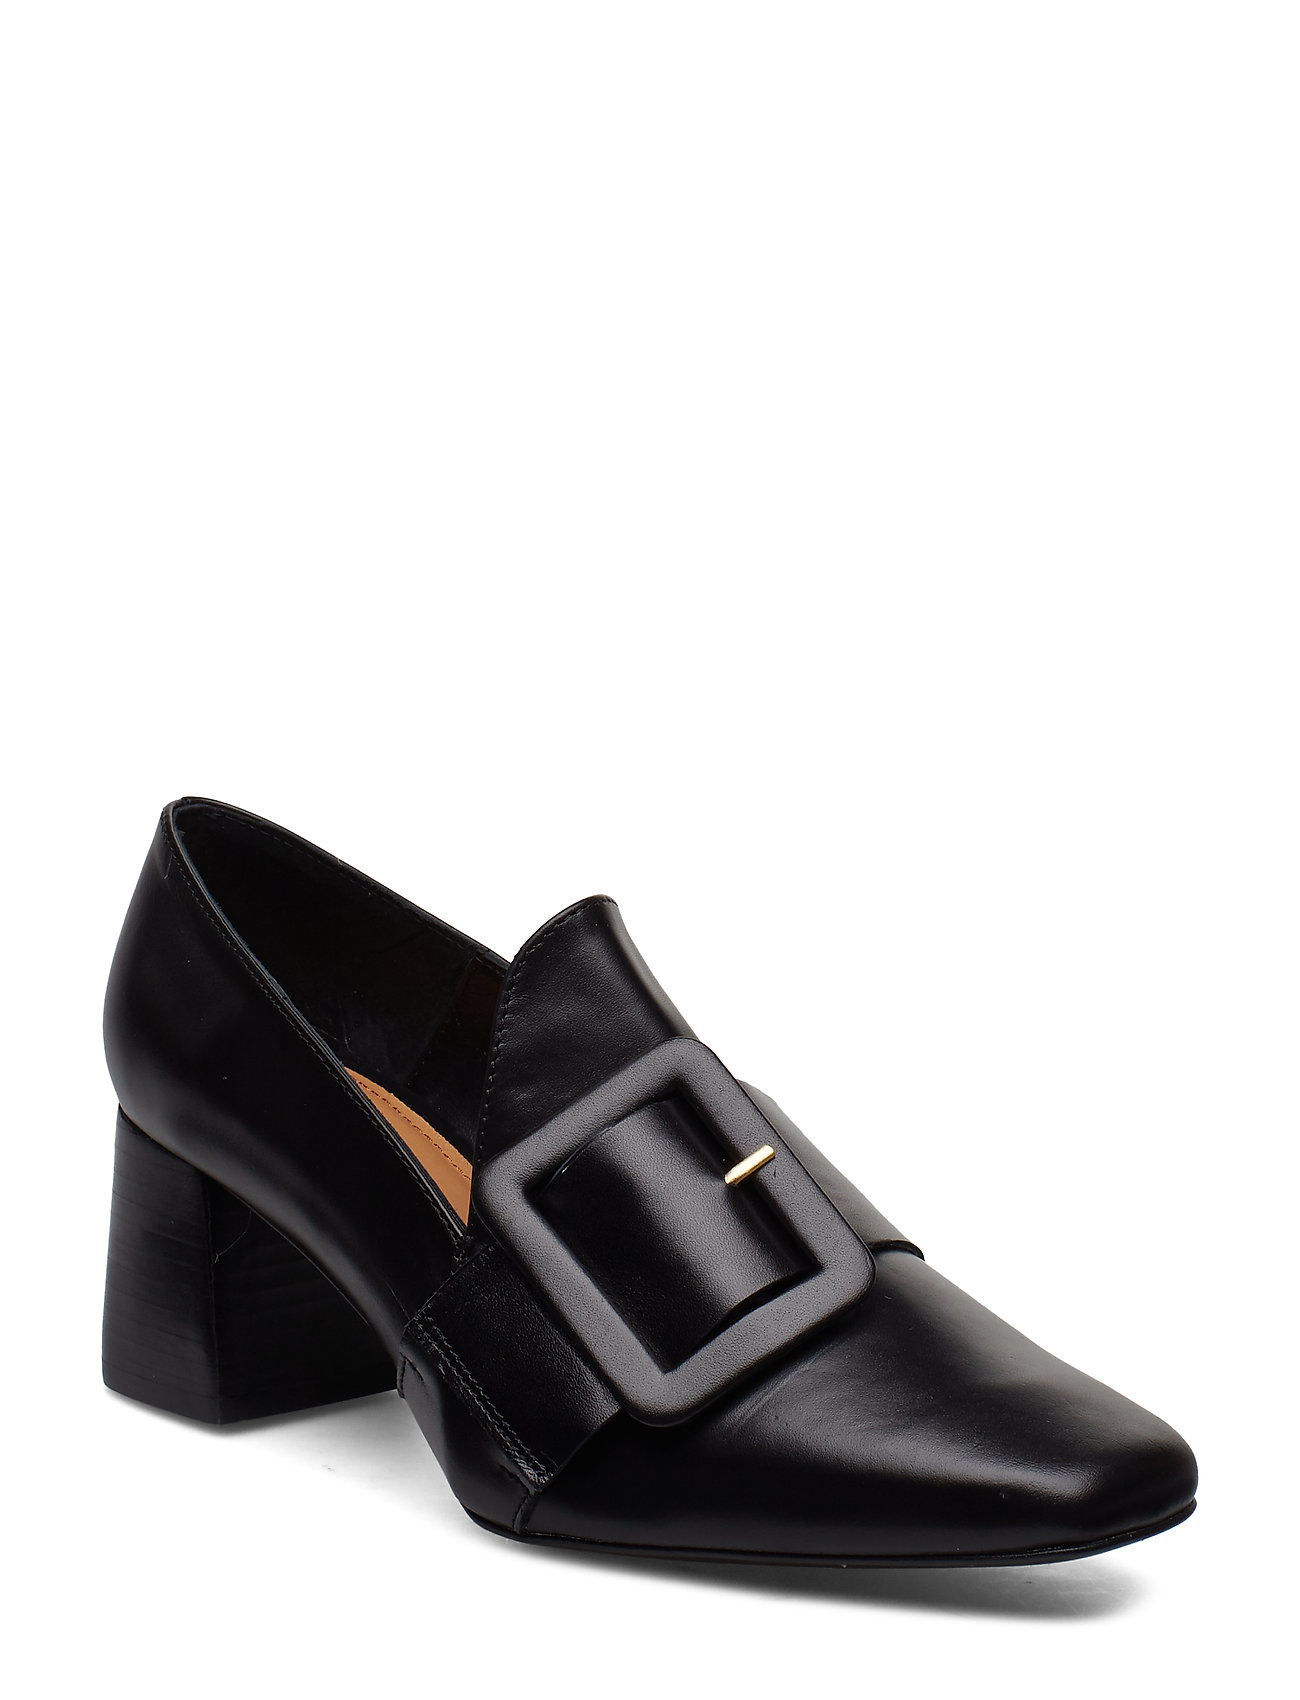 Flattered Lily Leather Pump - BLACK NAPPA